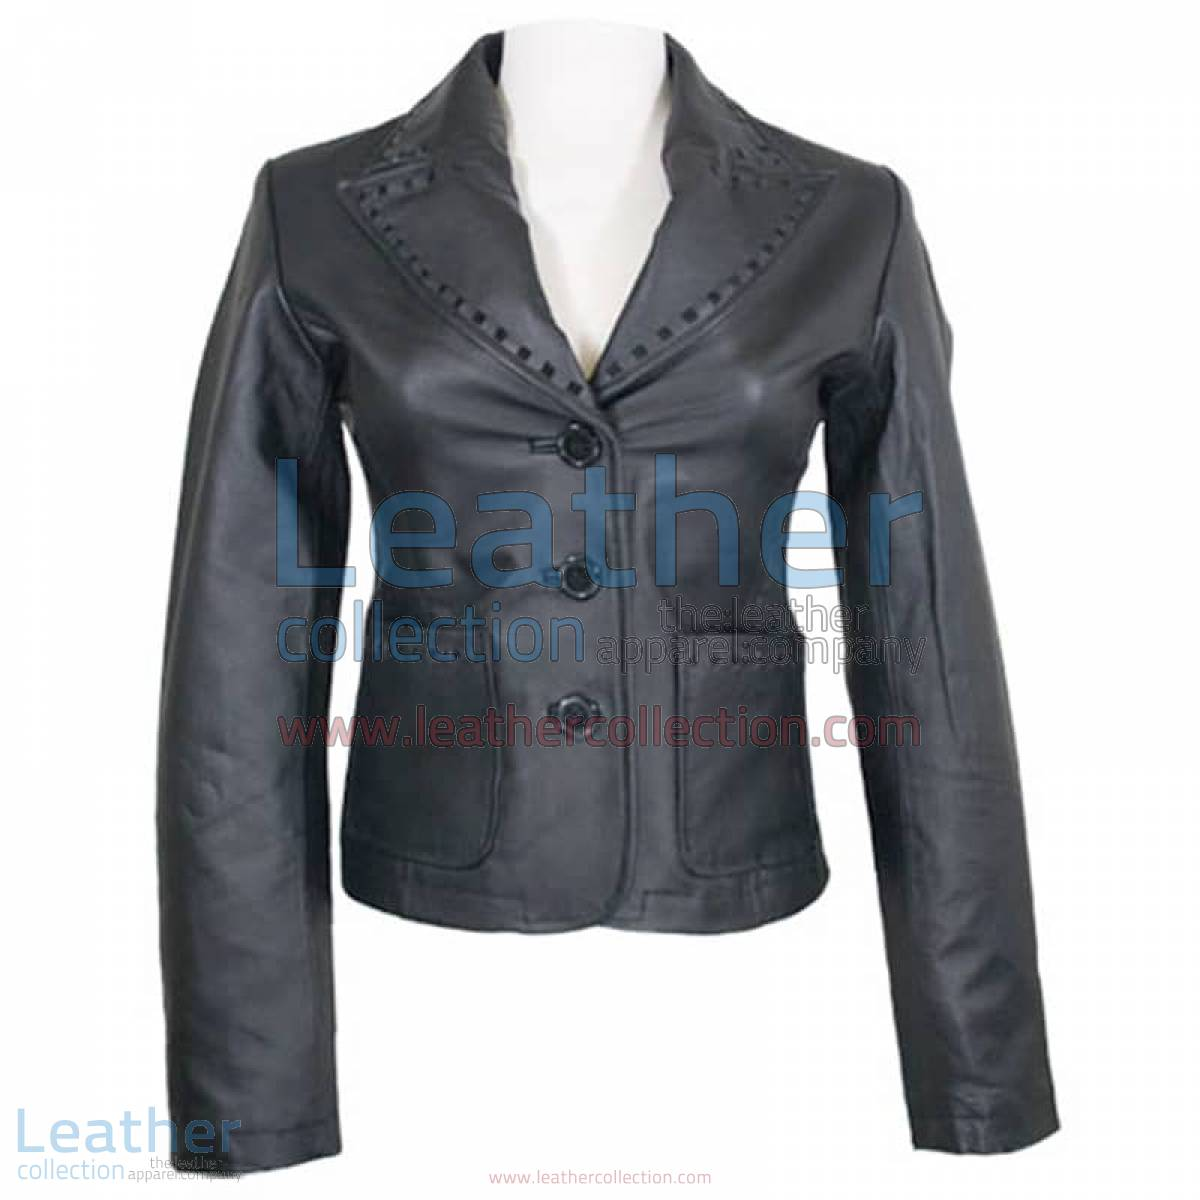 Ladies Fashion Coat Black | ladies coat